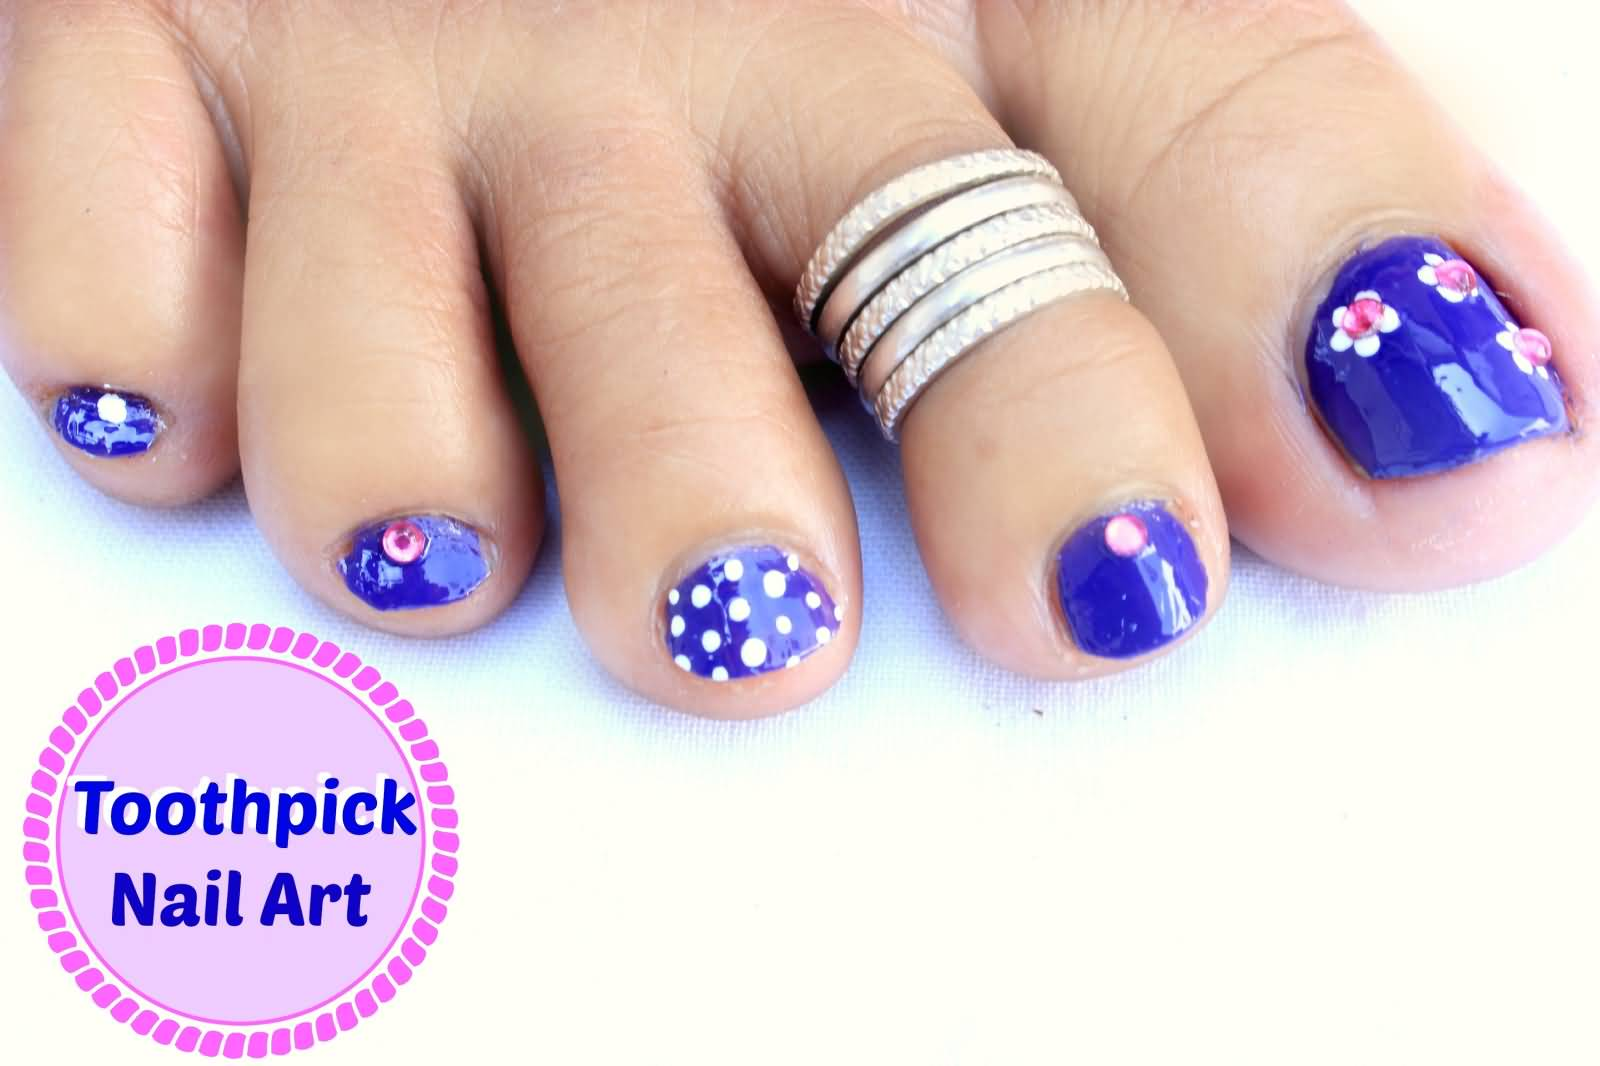 50+ Best Toe Nail Art Design Ideas For Girls